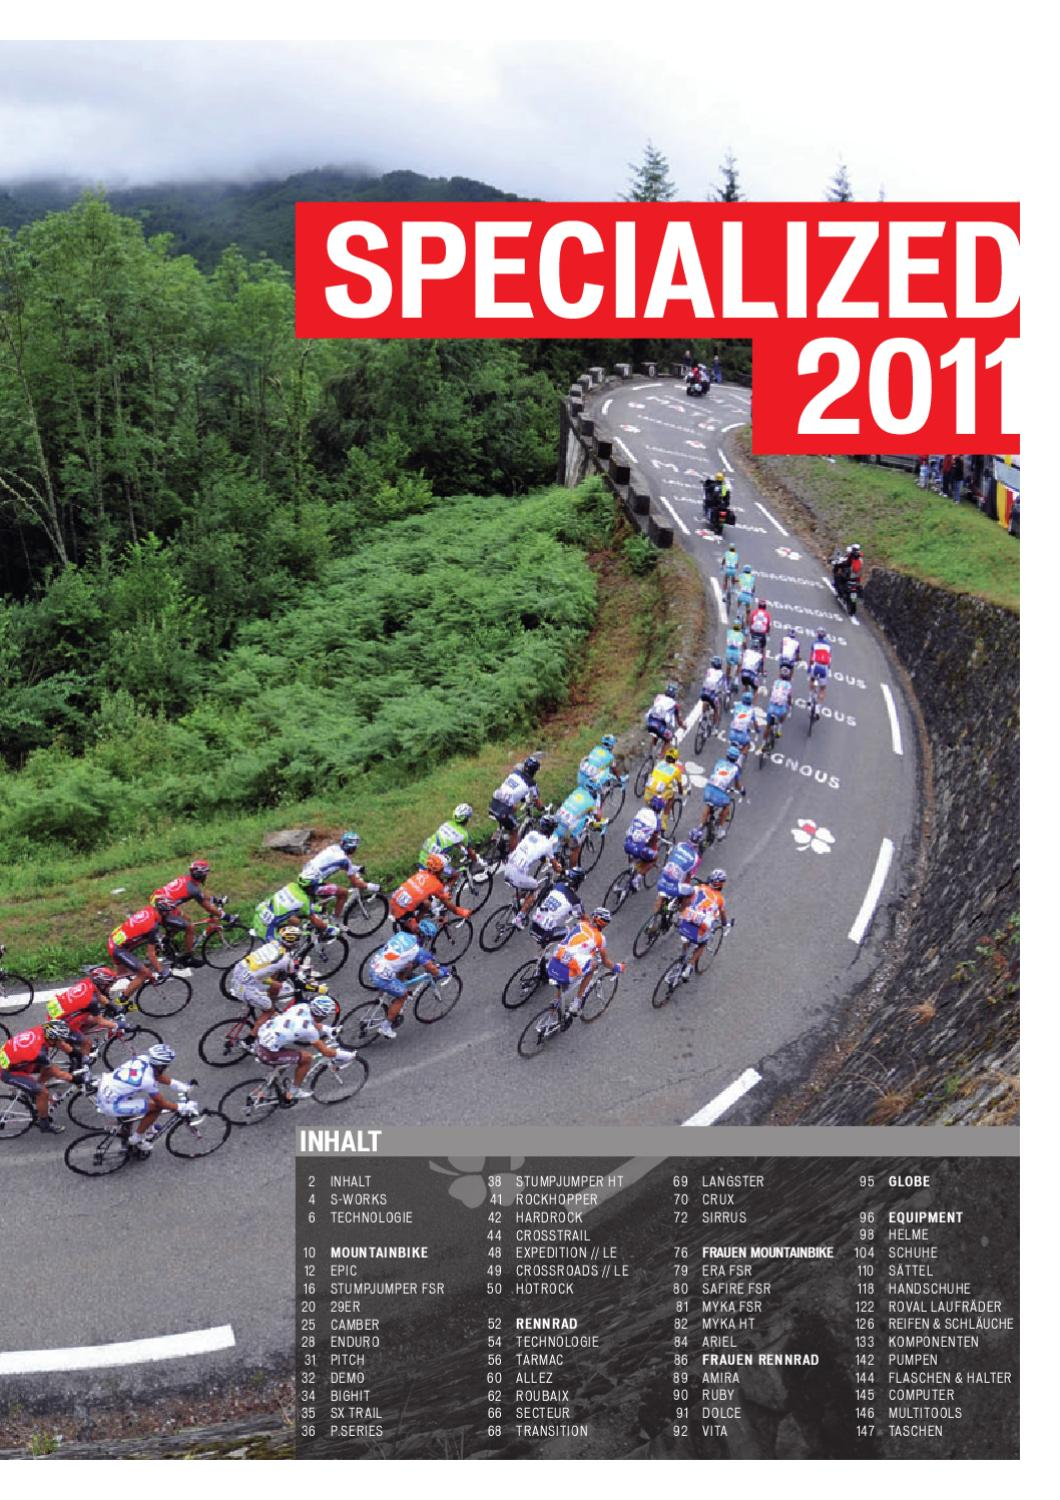 SPECIALIZED Maincatalogue 20 GER by Denise Bannert   issuu